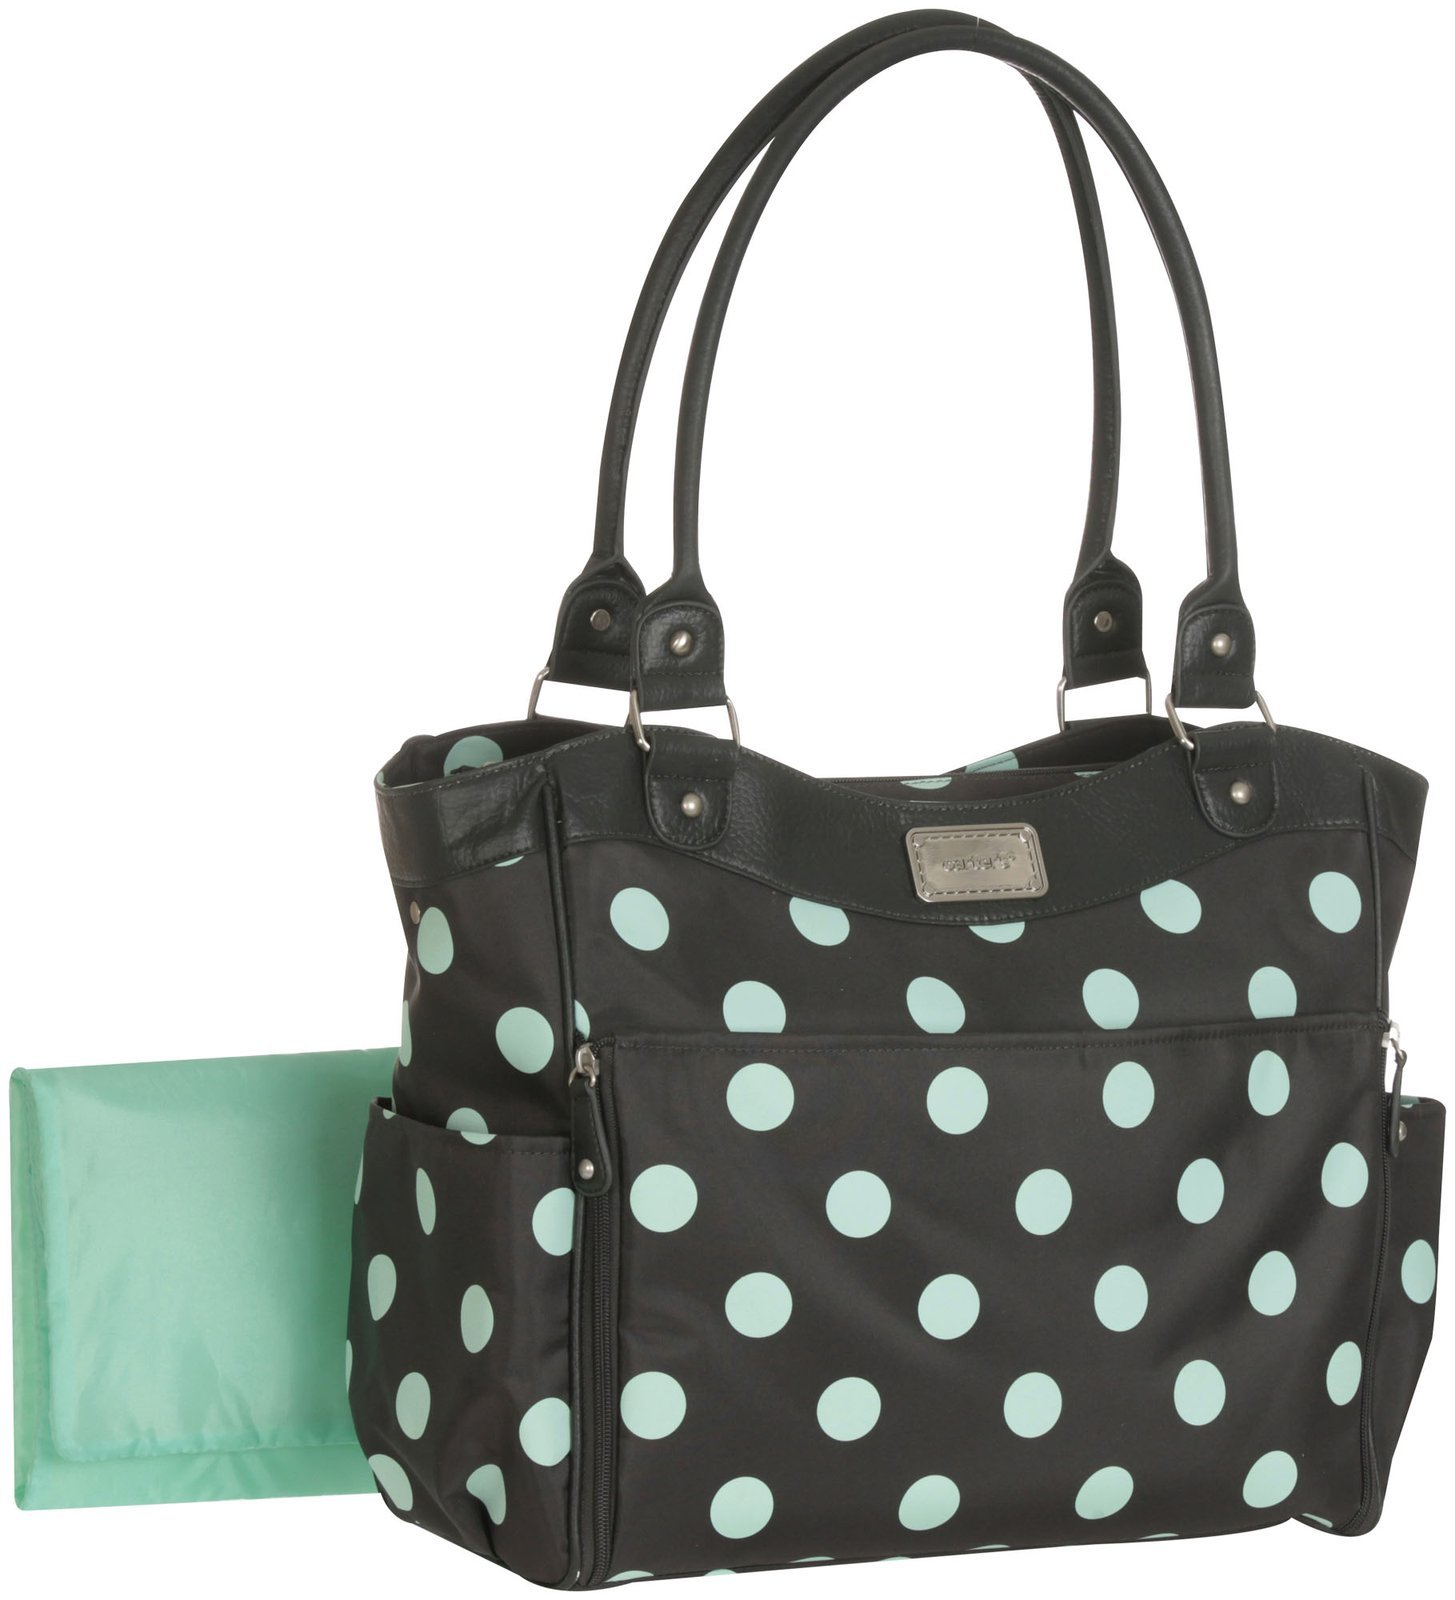 Carter's Allover Dot Diaper Tote - Grey/Turquoise